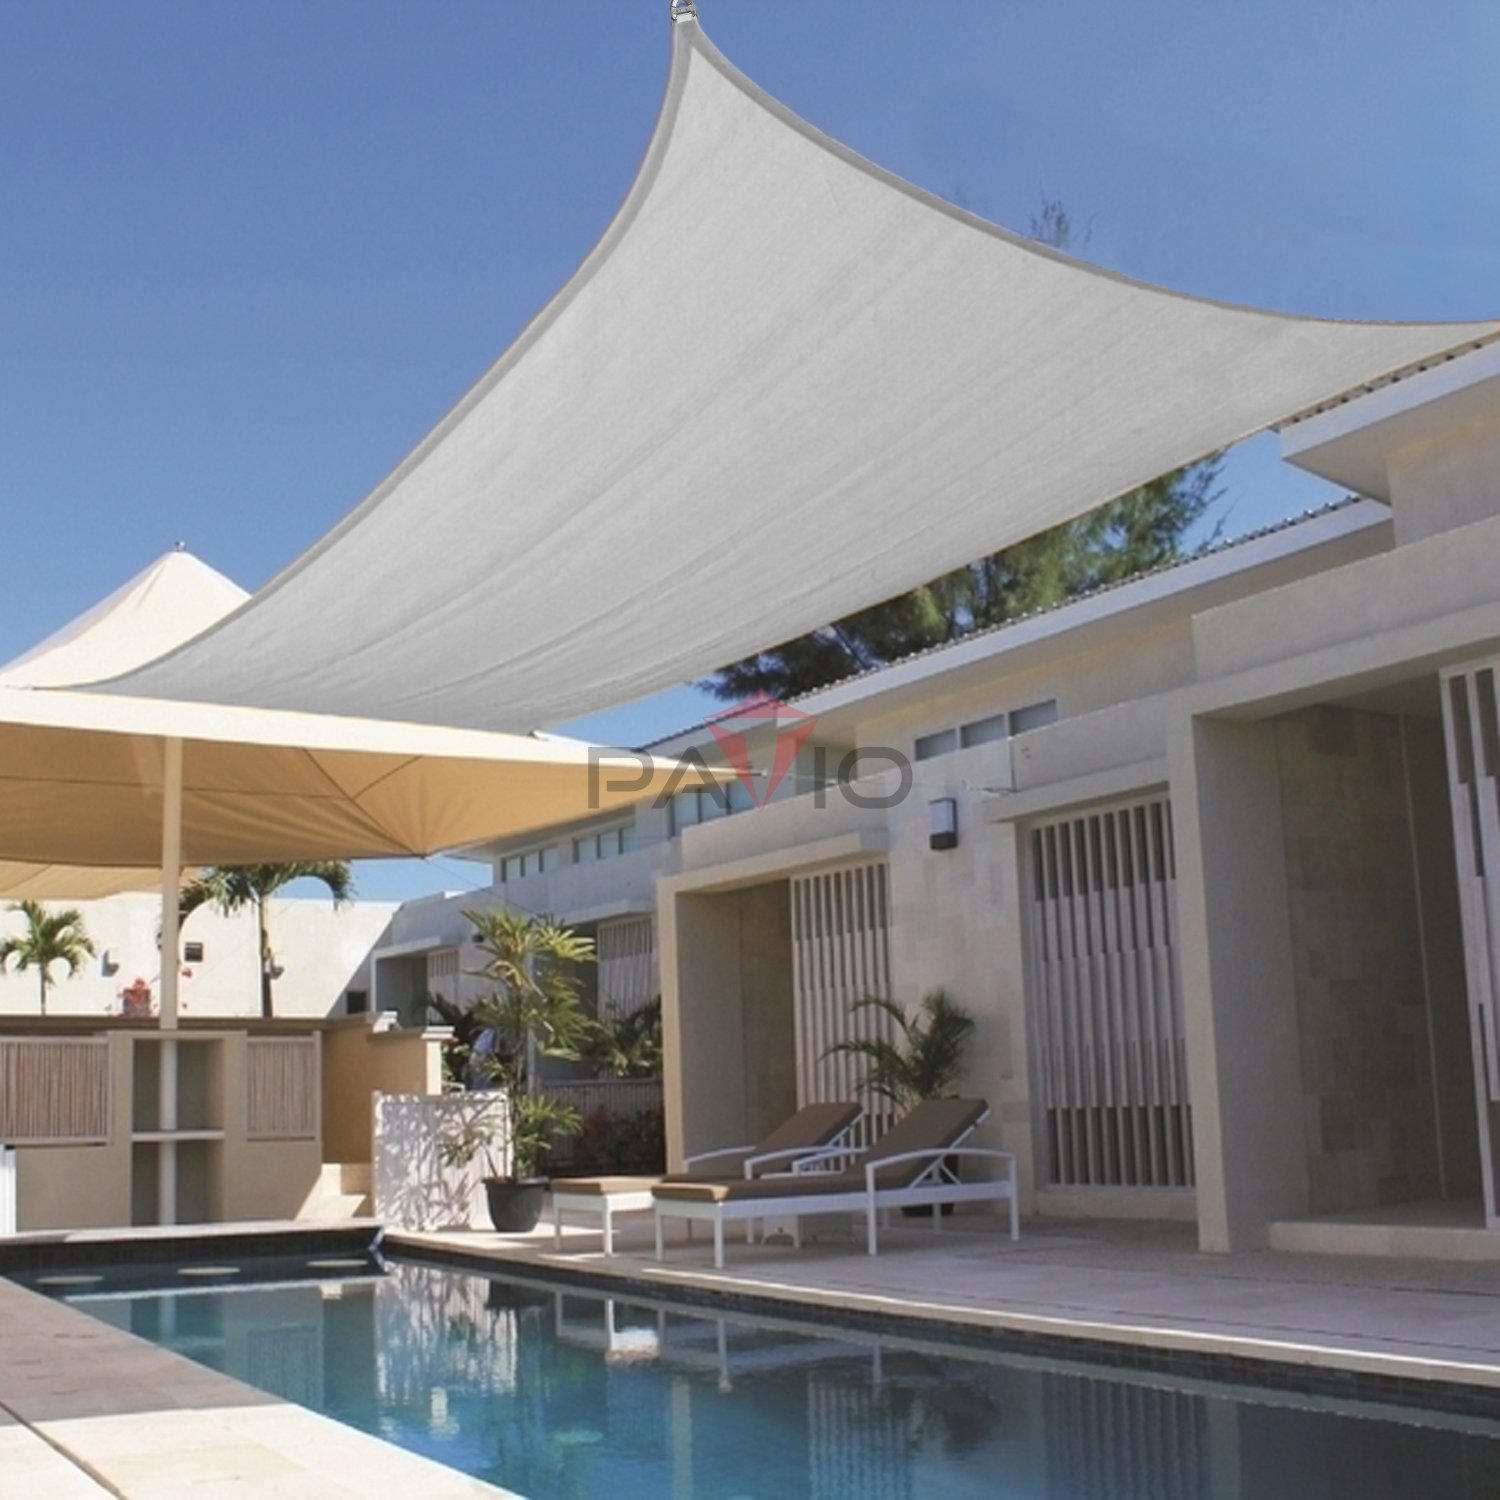 Patio Large Sun Shade Sail 24' x 24' Rectangle Heavy Duty Strengthen Durable Outdoor Canopy UV Block Fabric A-Ring Design Metal Spring Reinforcement 7 Year Warranty -Light Gray by Patio Paradise (Image #4)